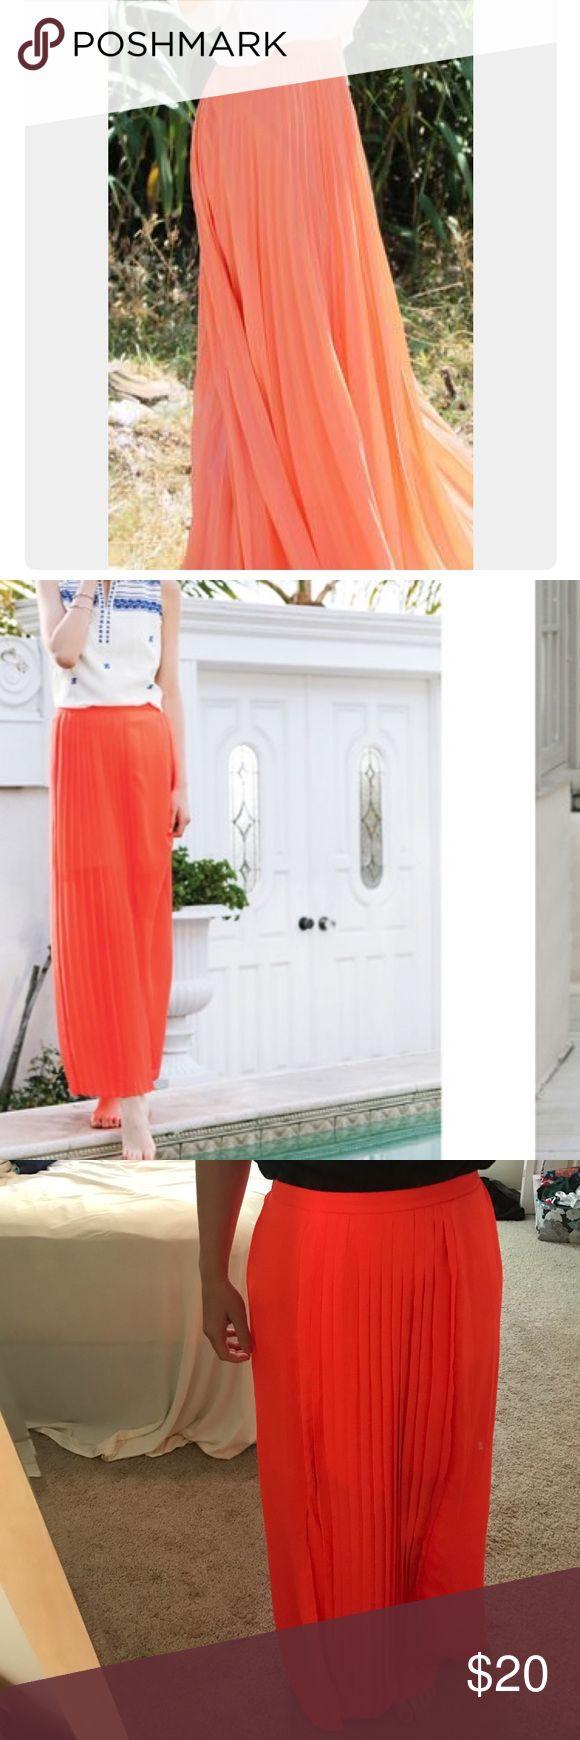 Coral maxi skirt Neon coral maxi skirt with side slit from Shop Stevie! The side slit goes to about the knee. The front is pleated & the waist band is partially elastic. Perfect for tall girls! Skirts Maxi